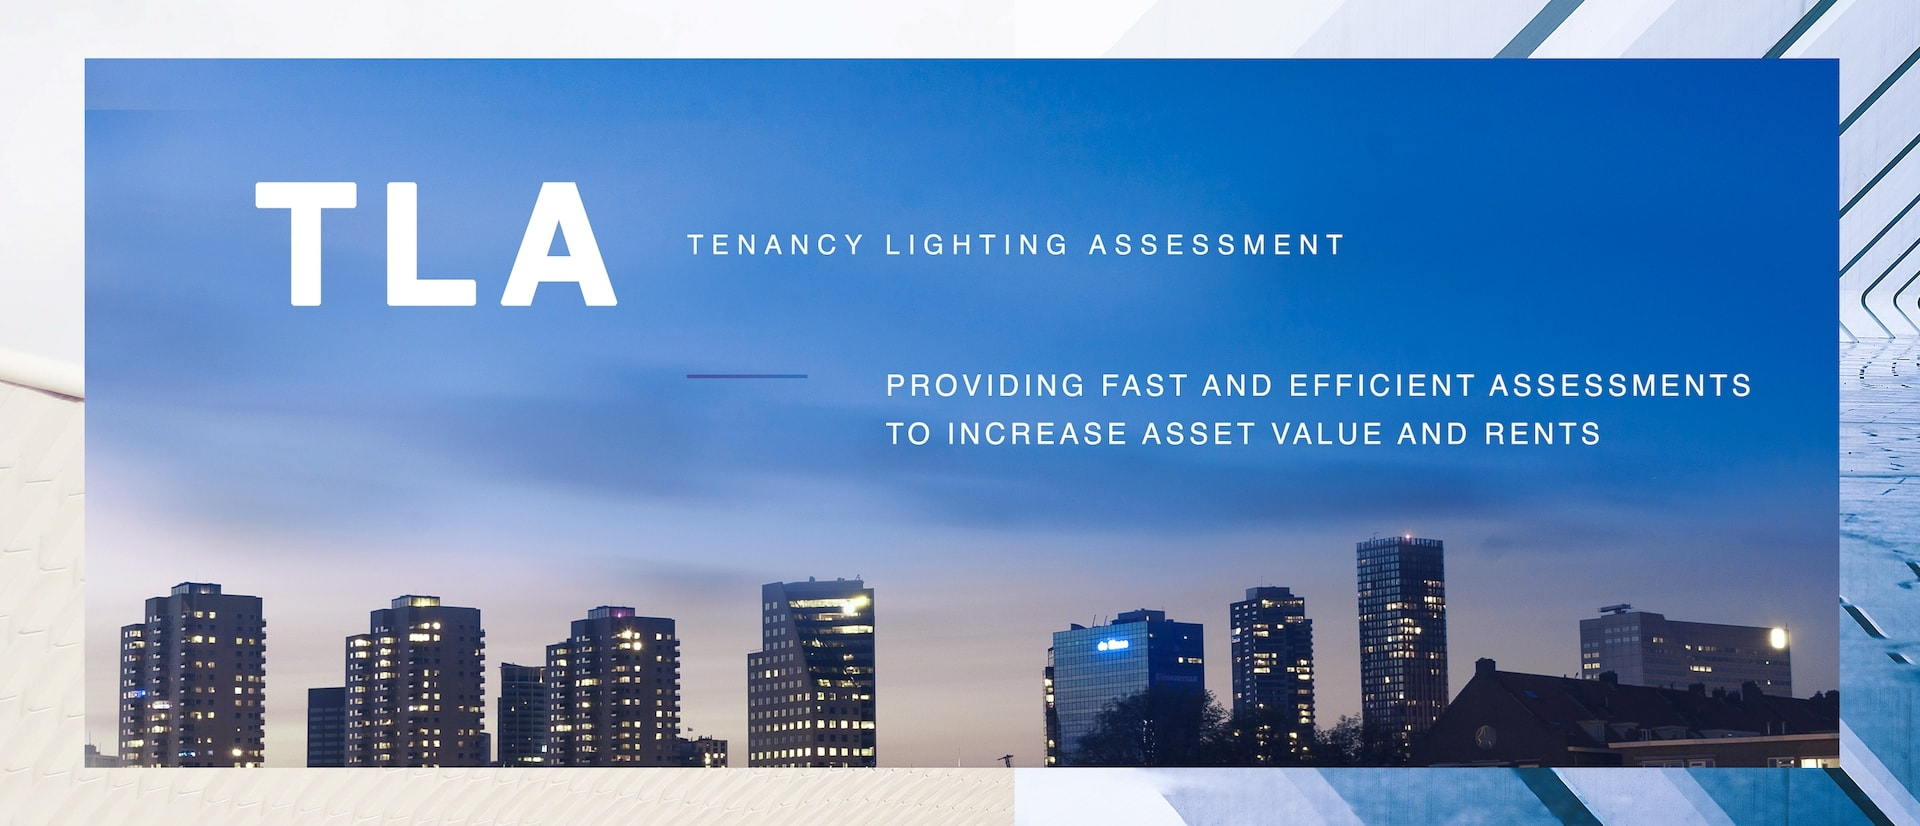 Tenancy Lighting Assessment